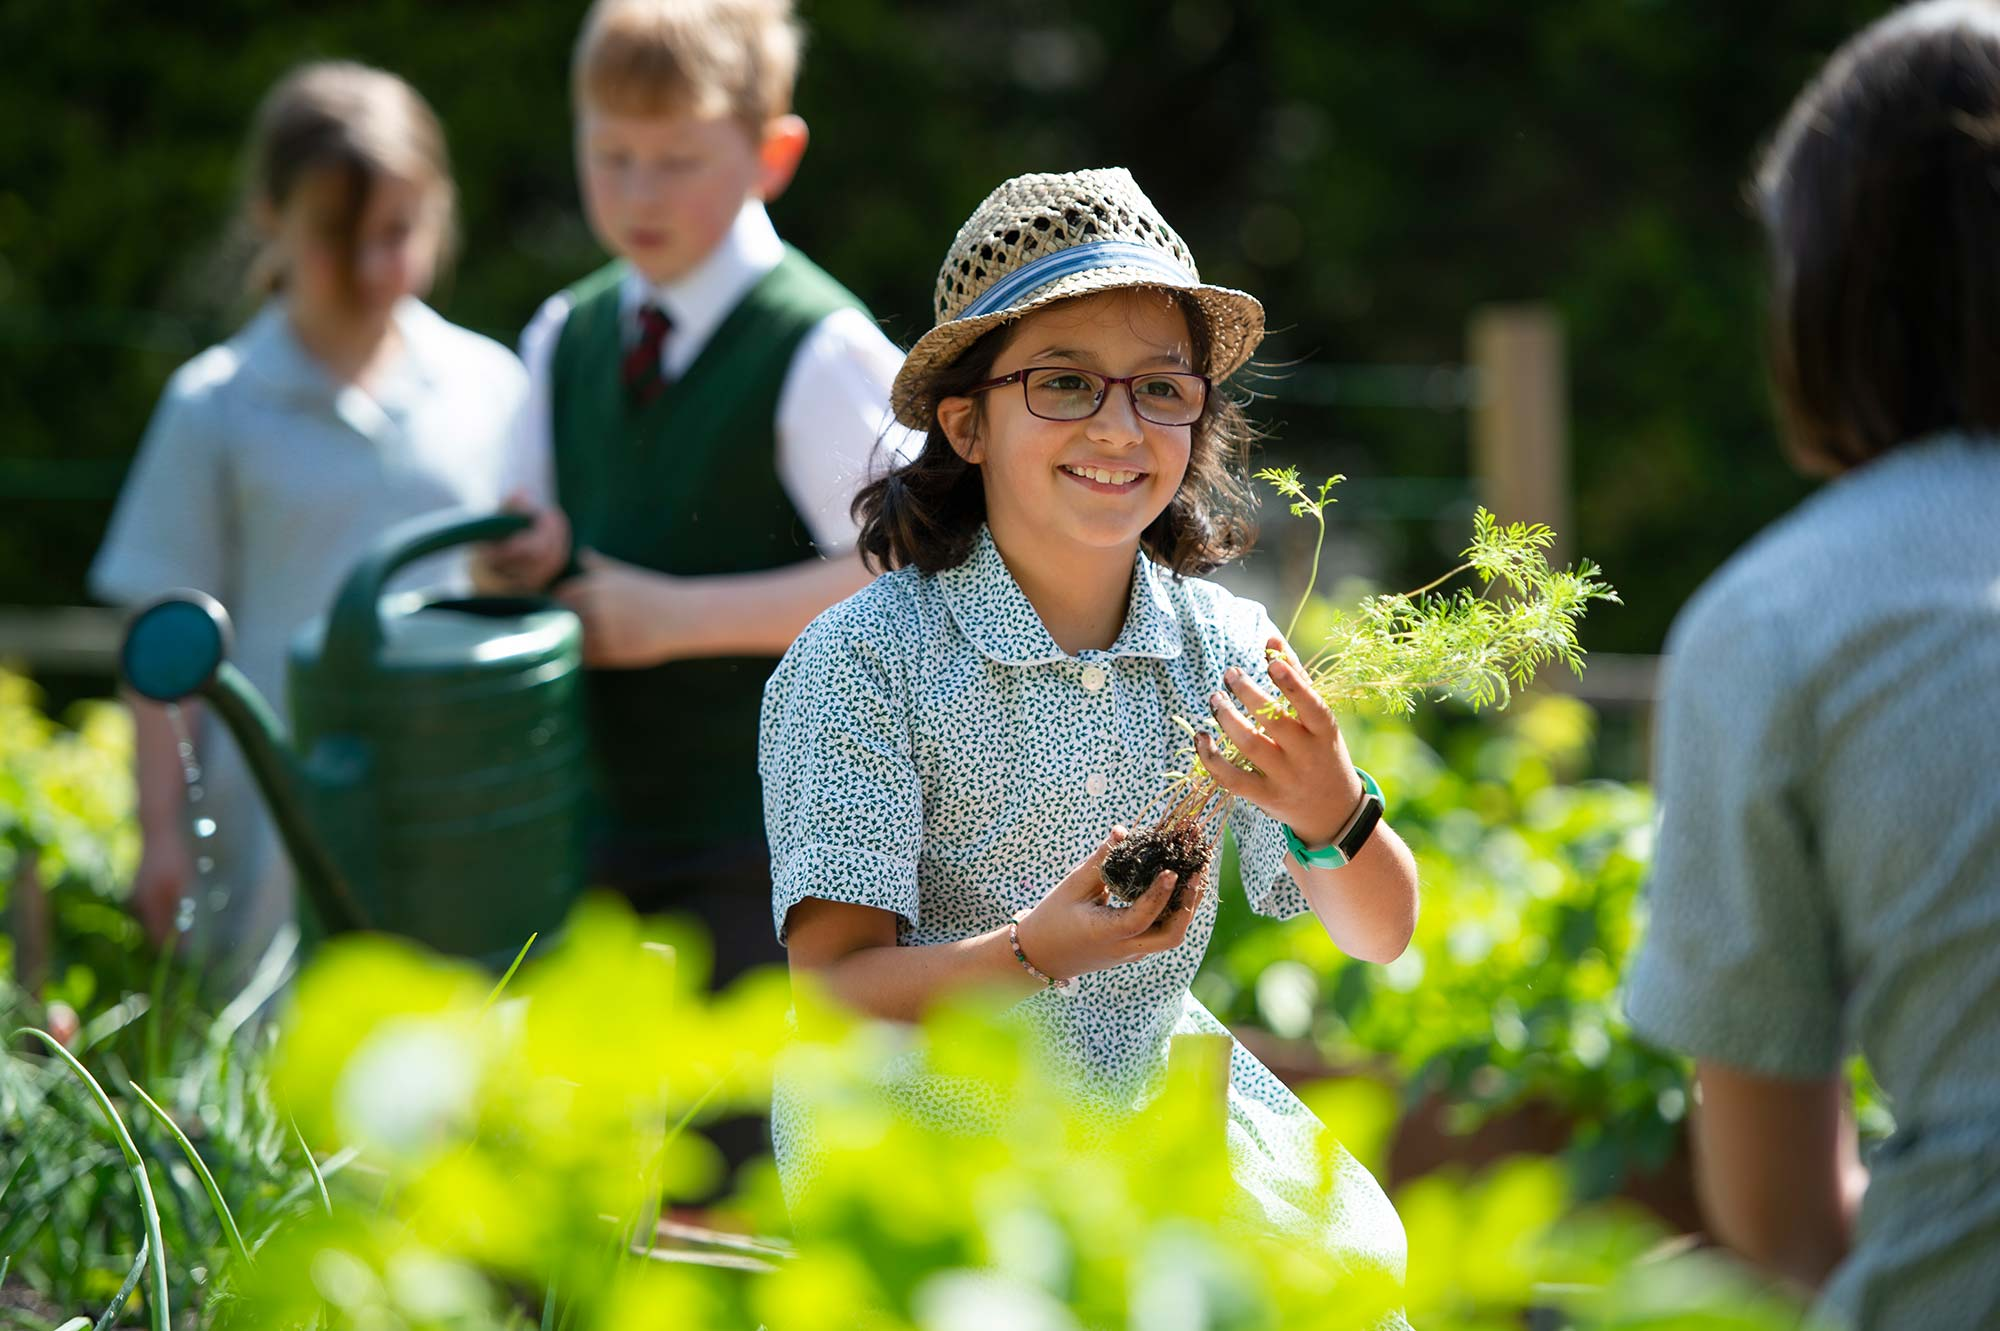 Yarrells-School-and-Nursery-Gardening